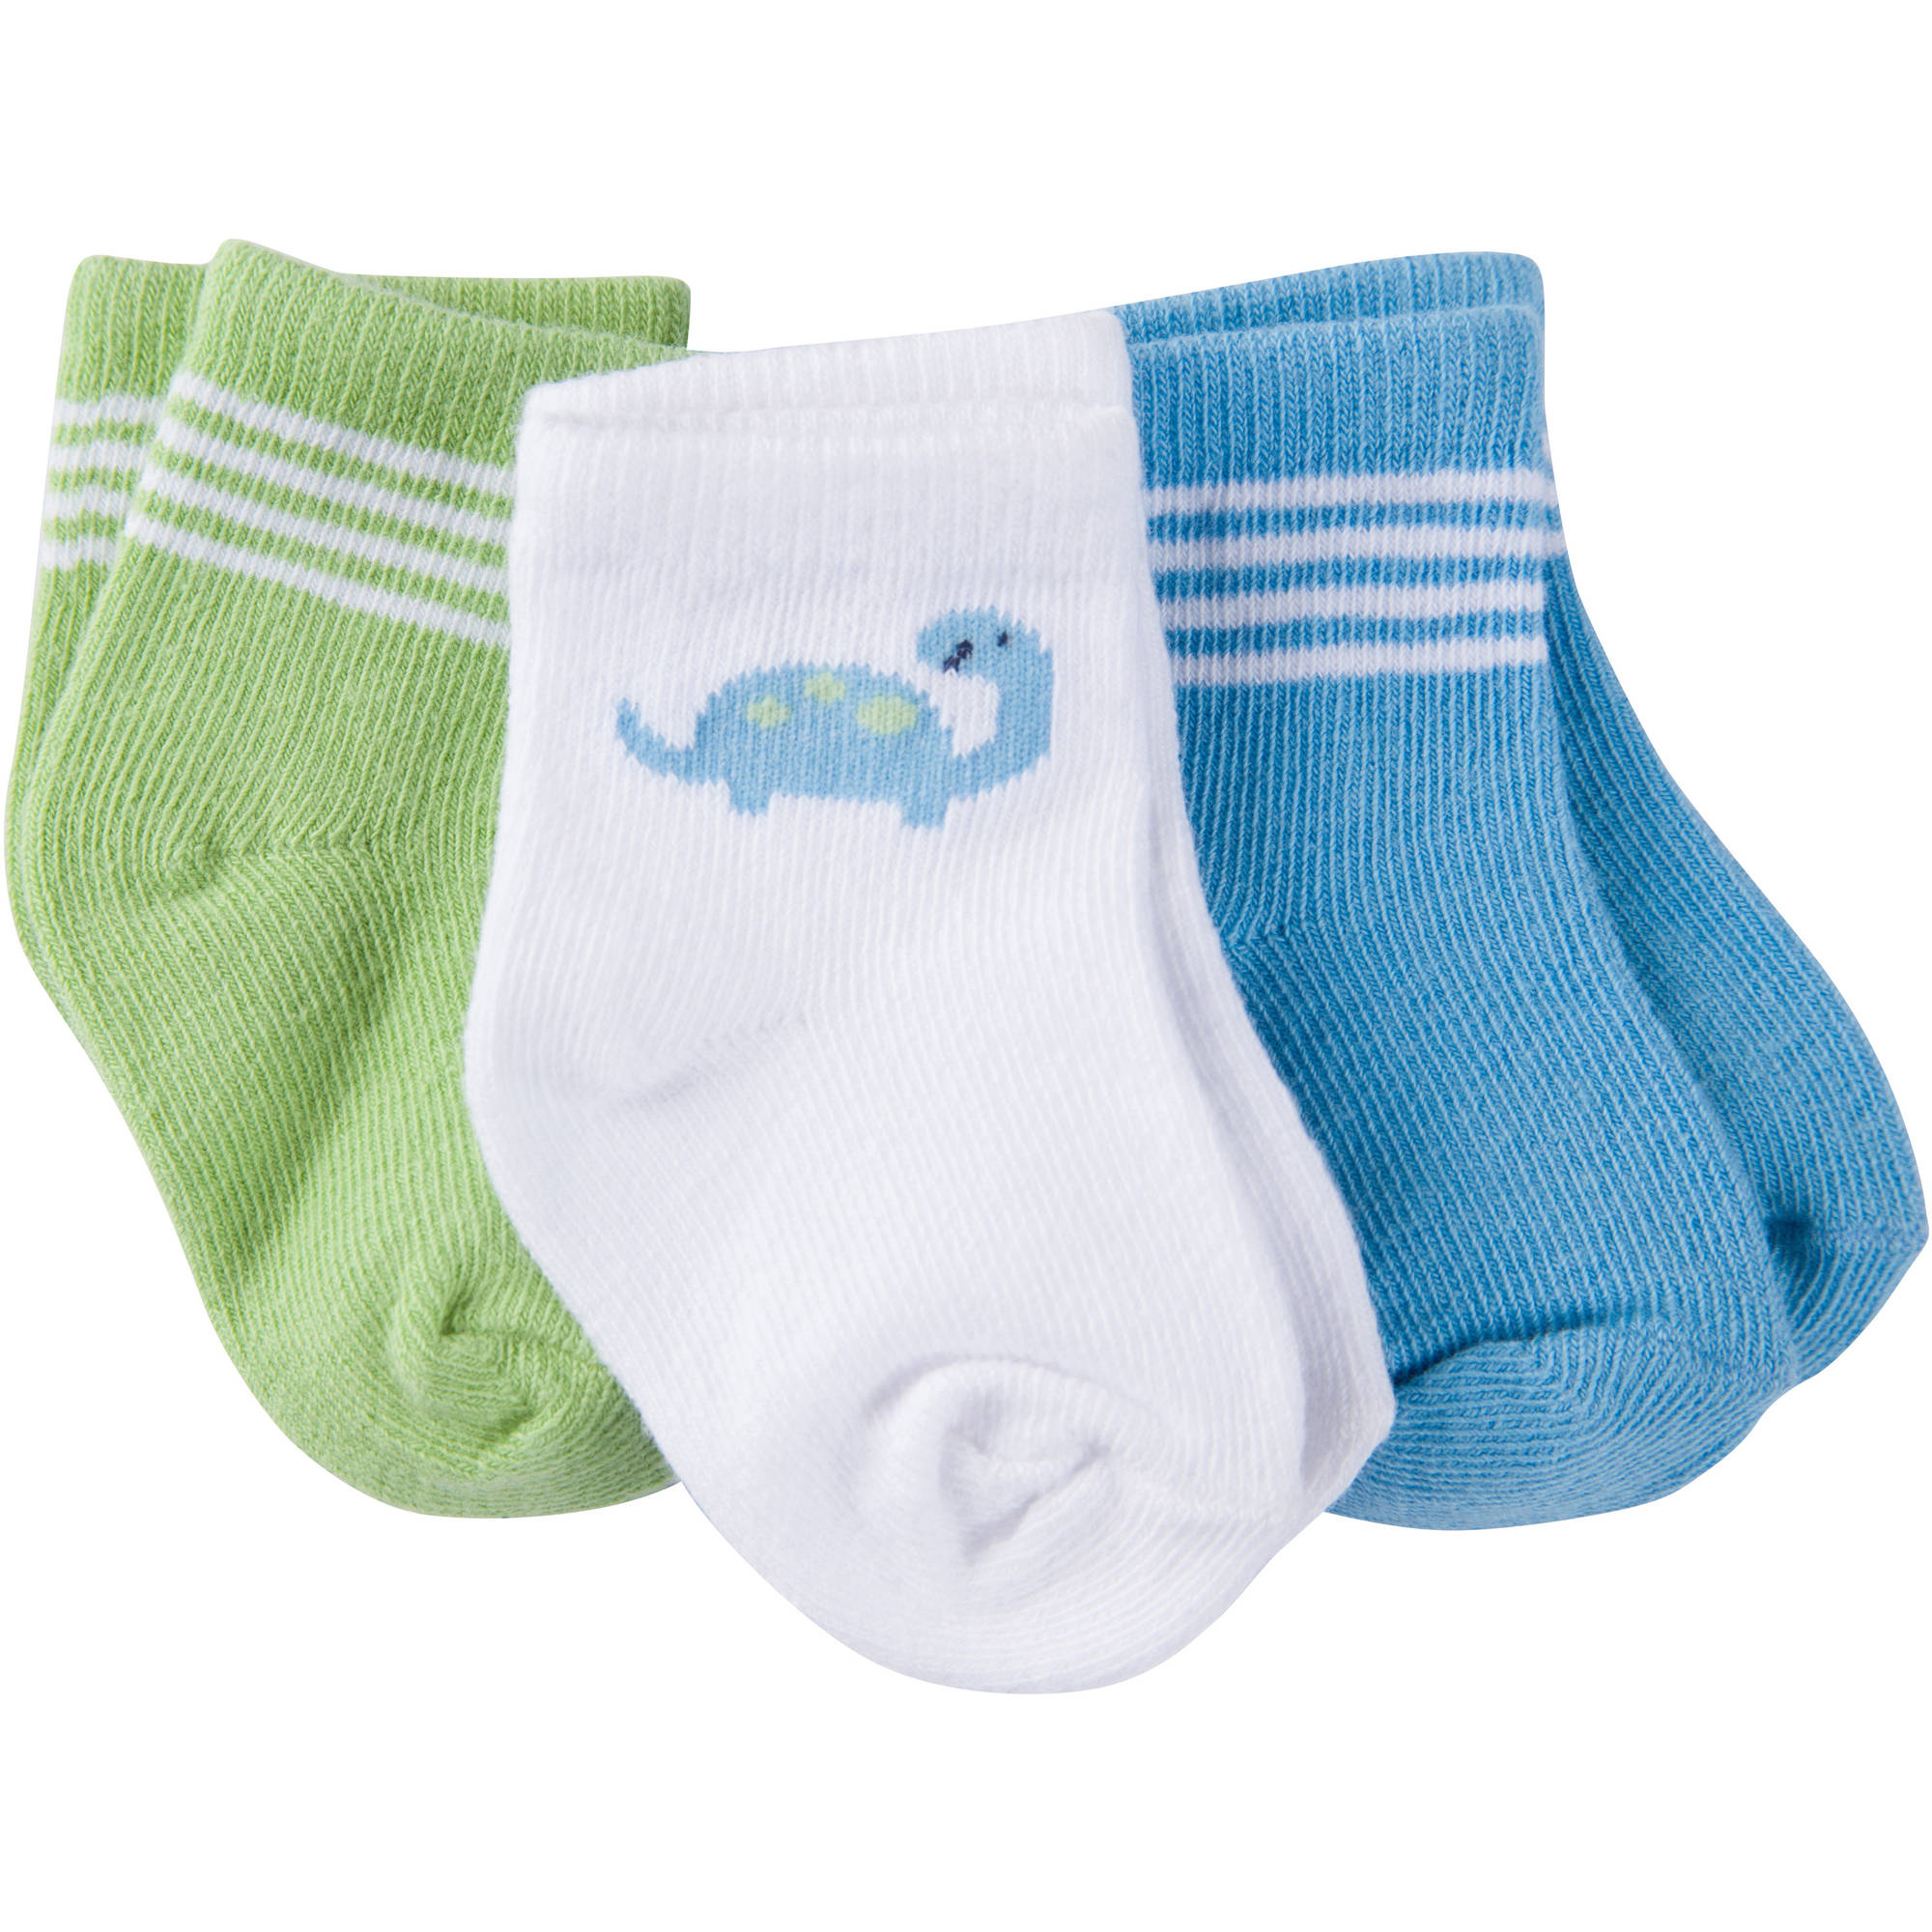 Gerber Newborn Baby Boy Ankle Bootie Socks, 3-Pack